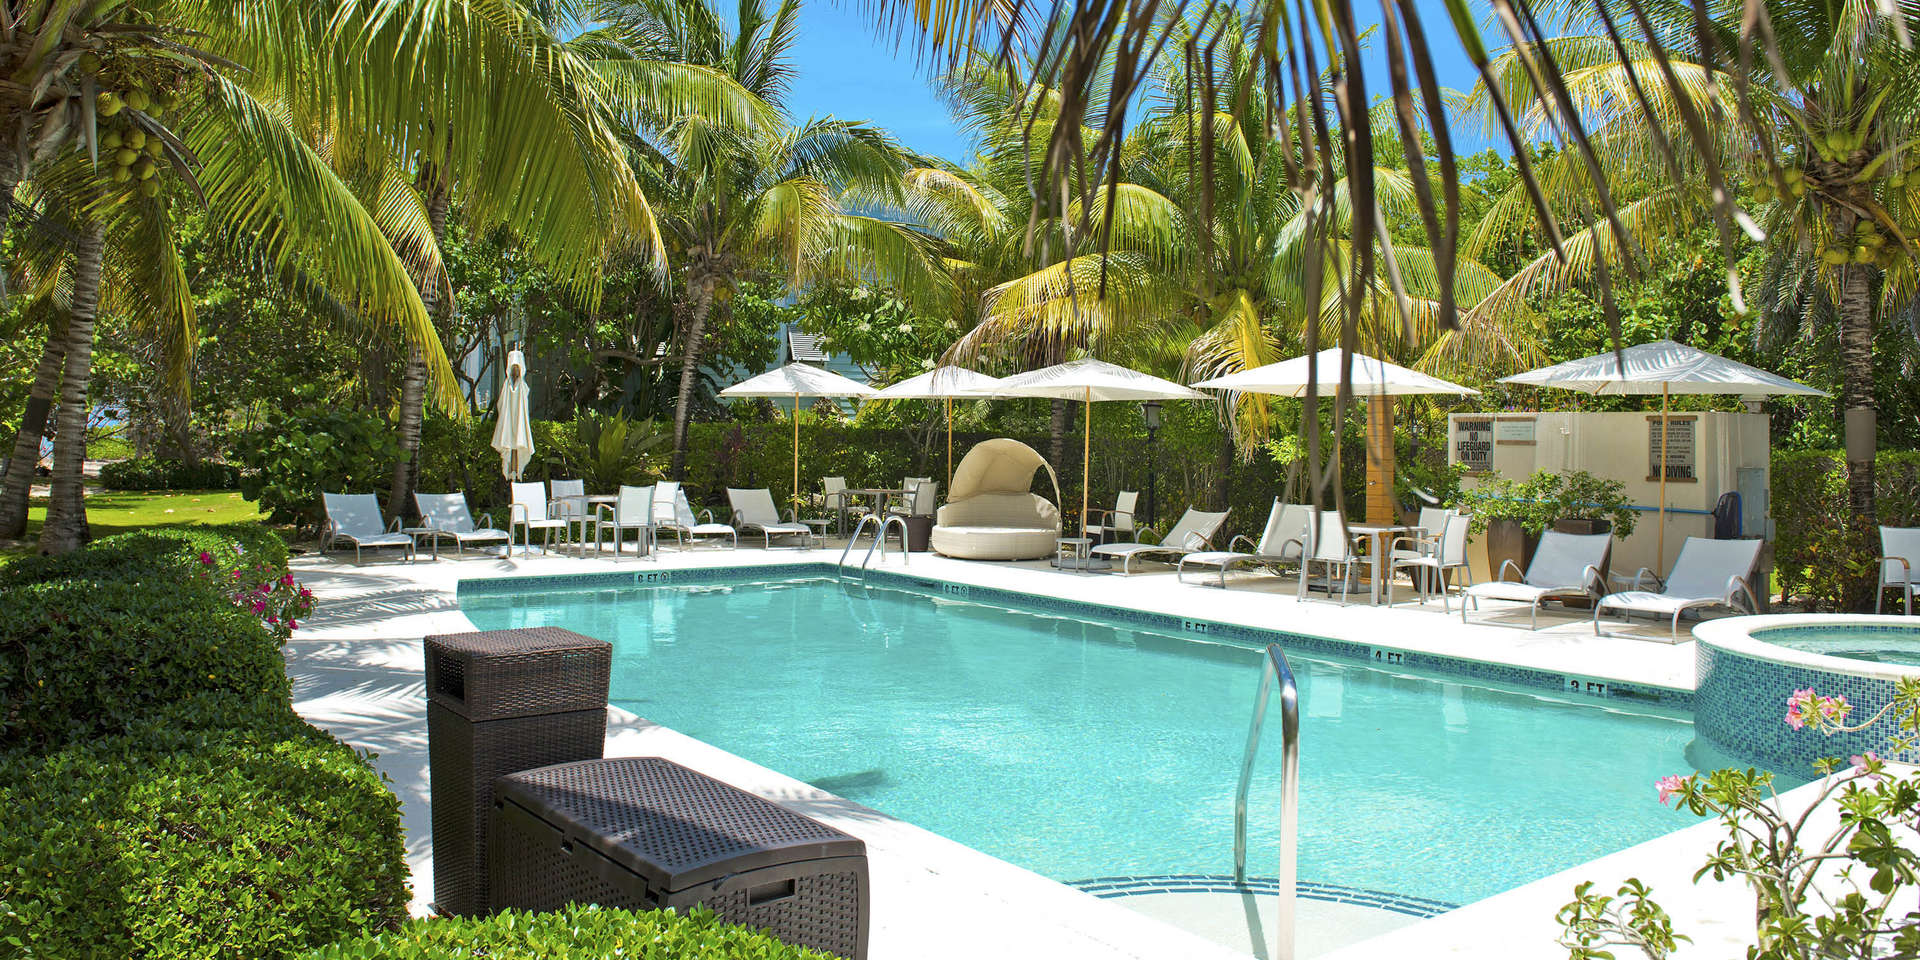 Luxury villa rentals caribbean - Cayman islands - Grand cayman - West bay - Sea Orchard Retreat - Image 1/15